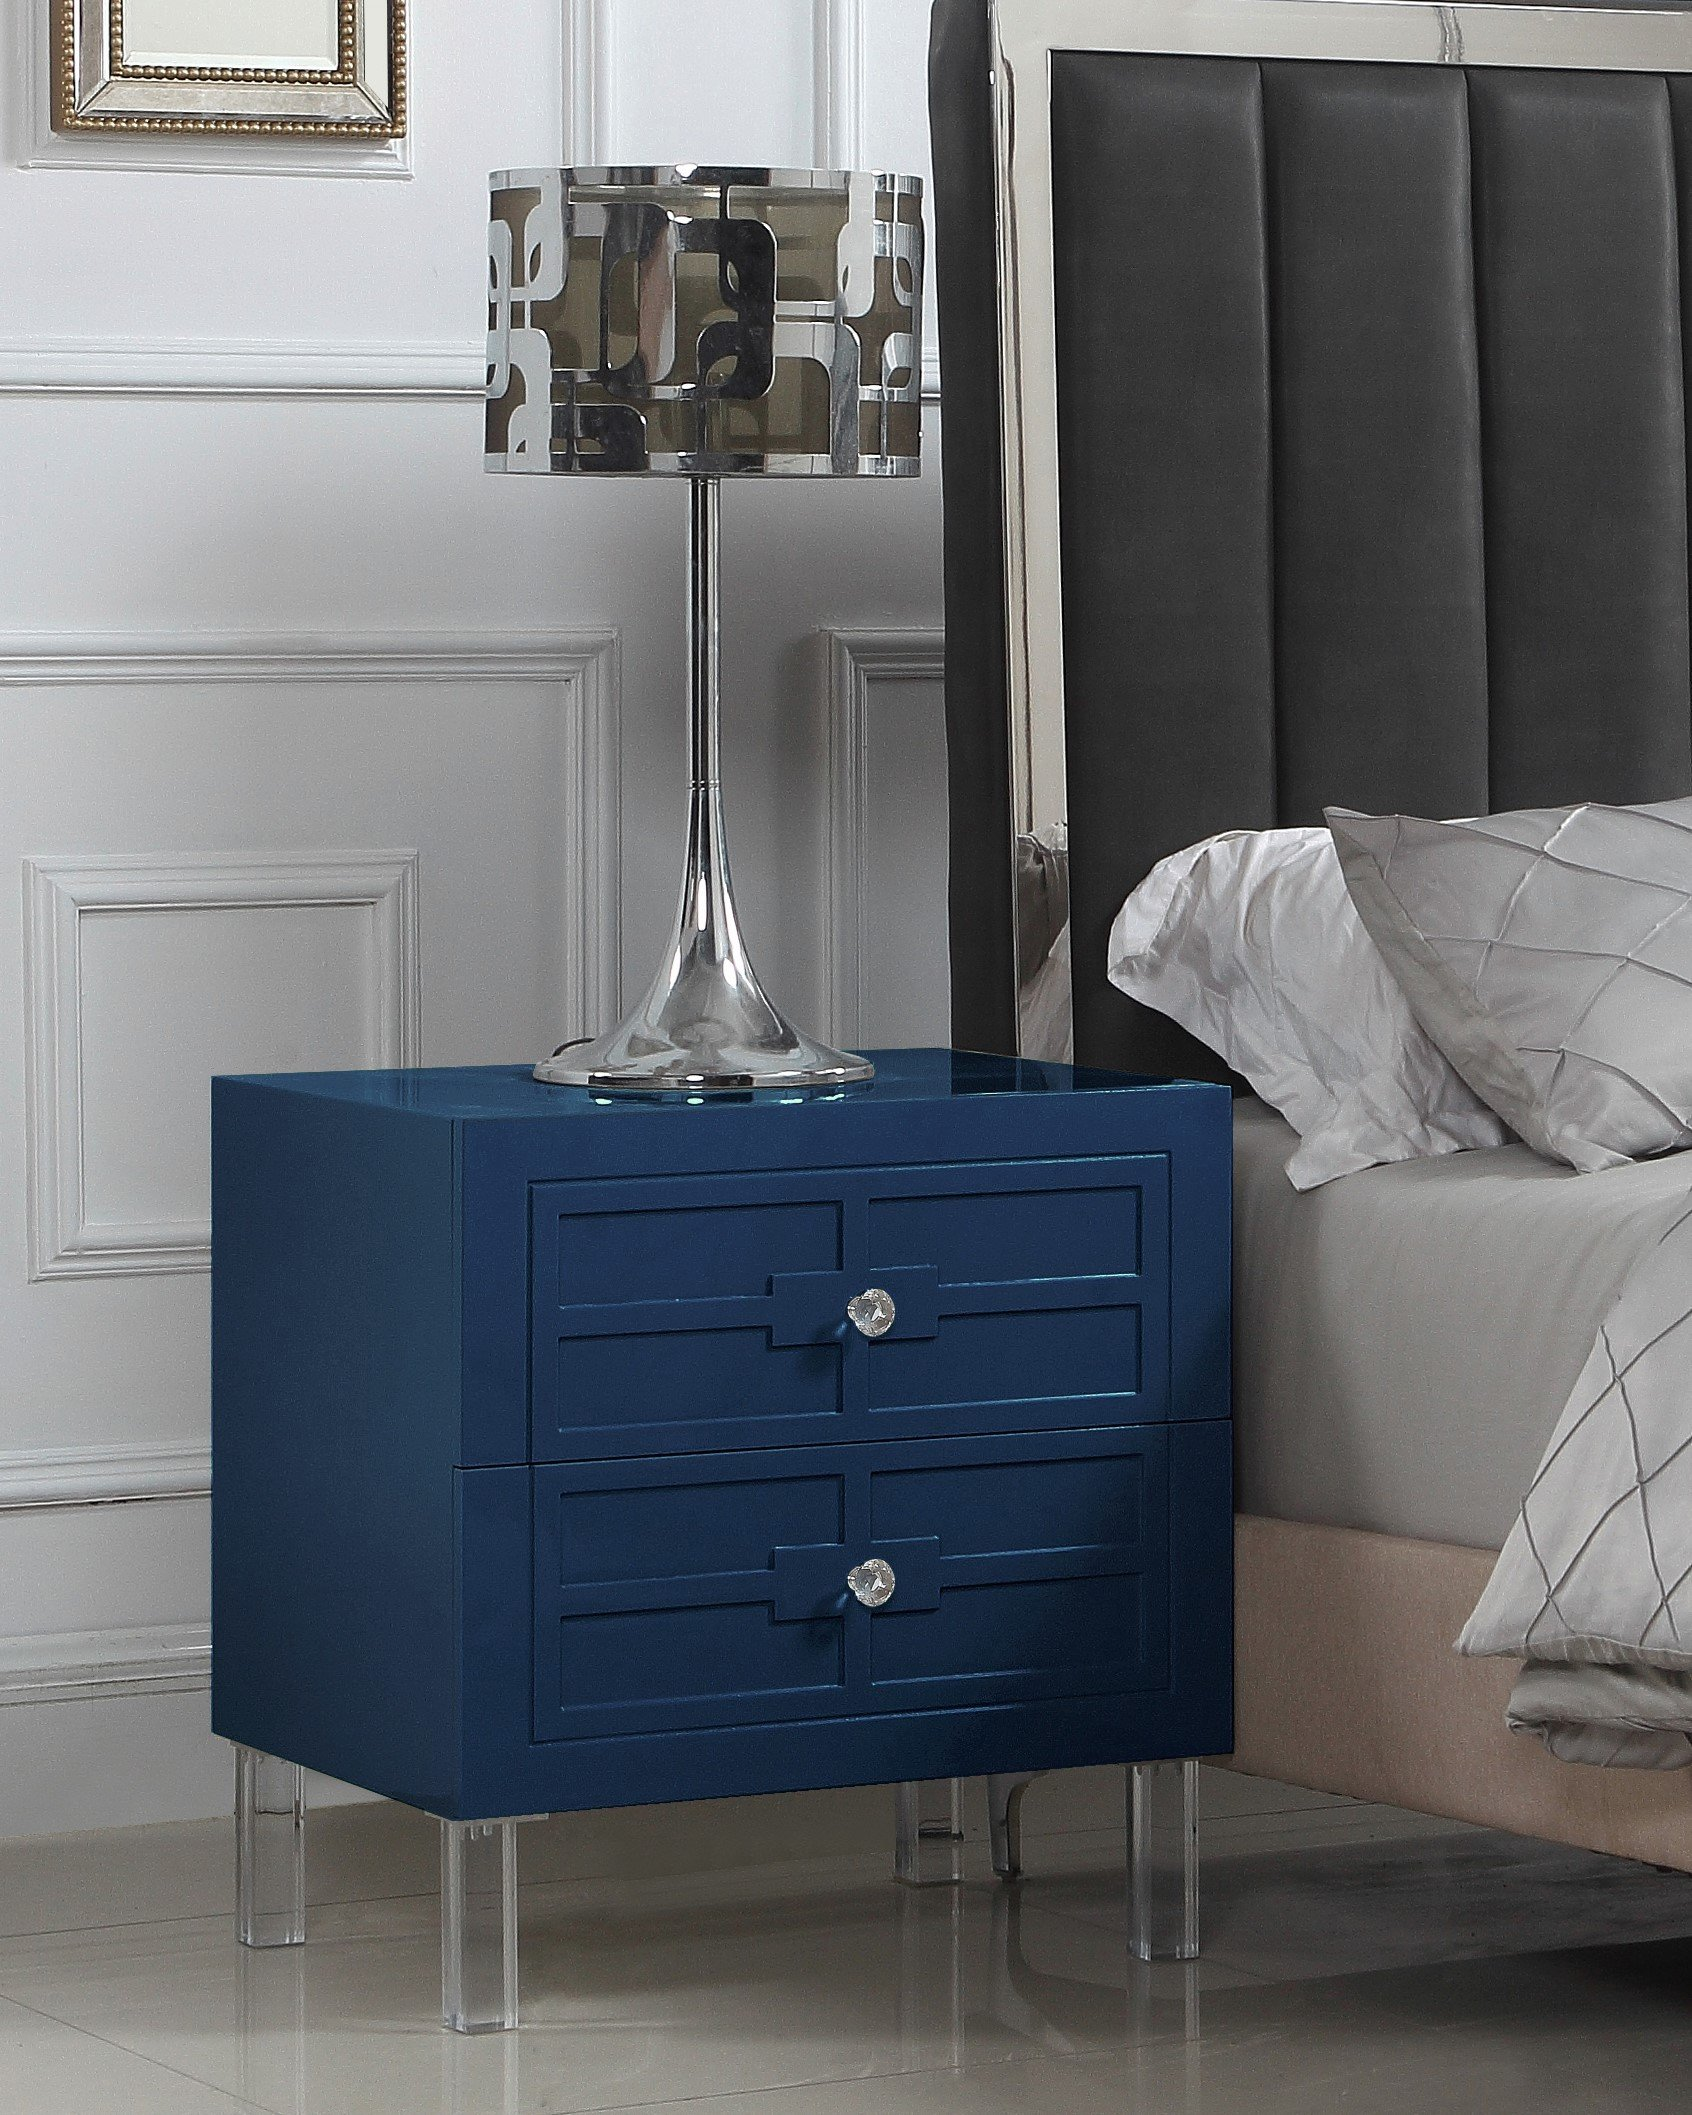 Iconic Home Naples Nightstand Side Table with 2 Self Closing Drawers Lacquer Acrylic Knob Legs, Modern Contemporary, Royal Navy by Iconic Home